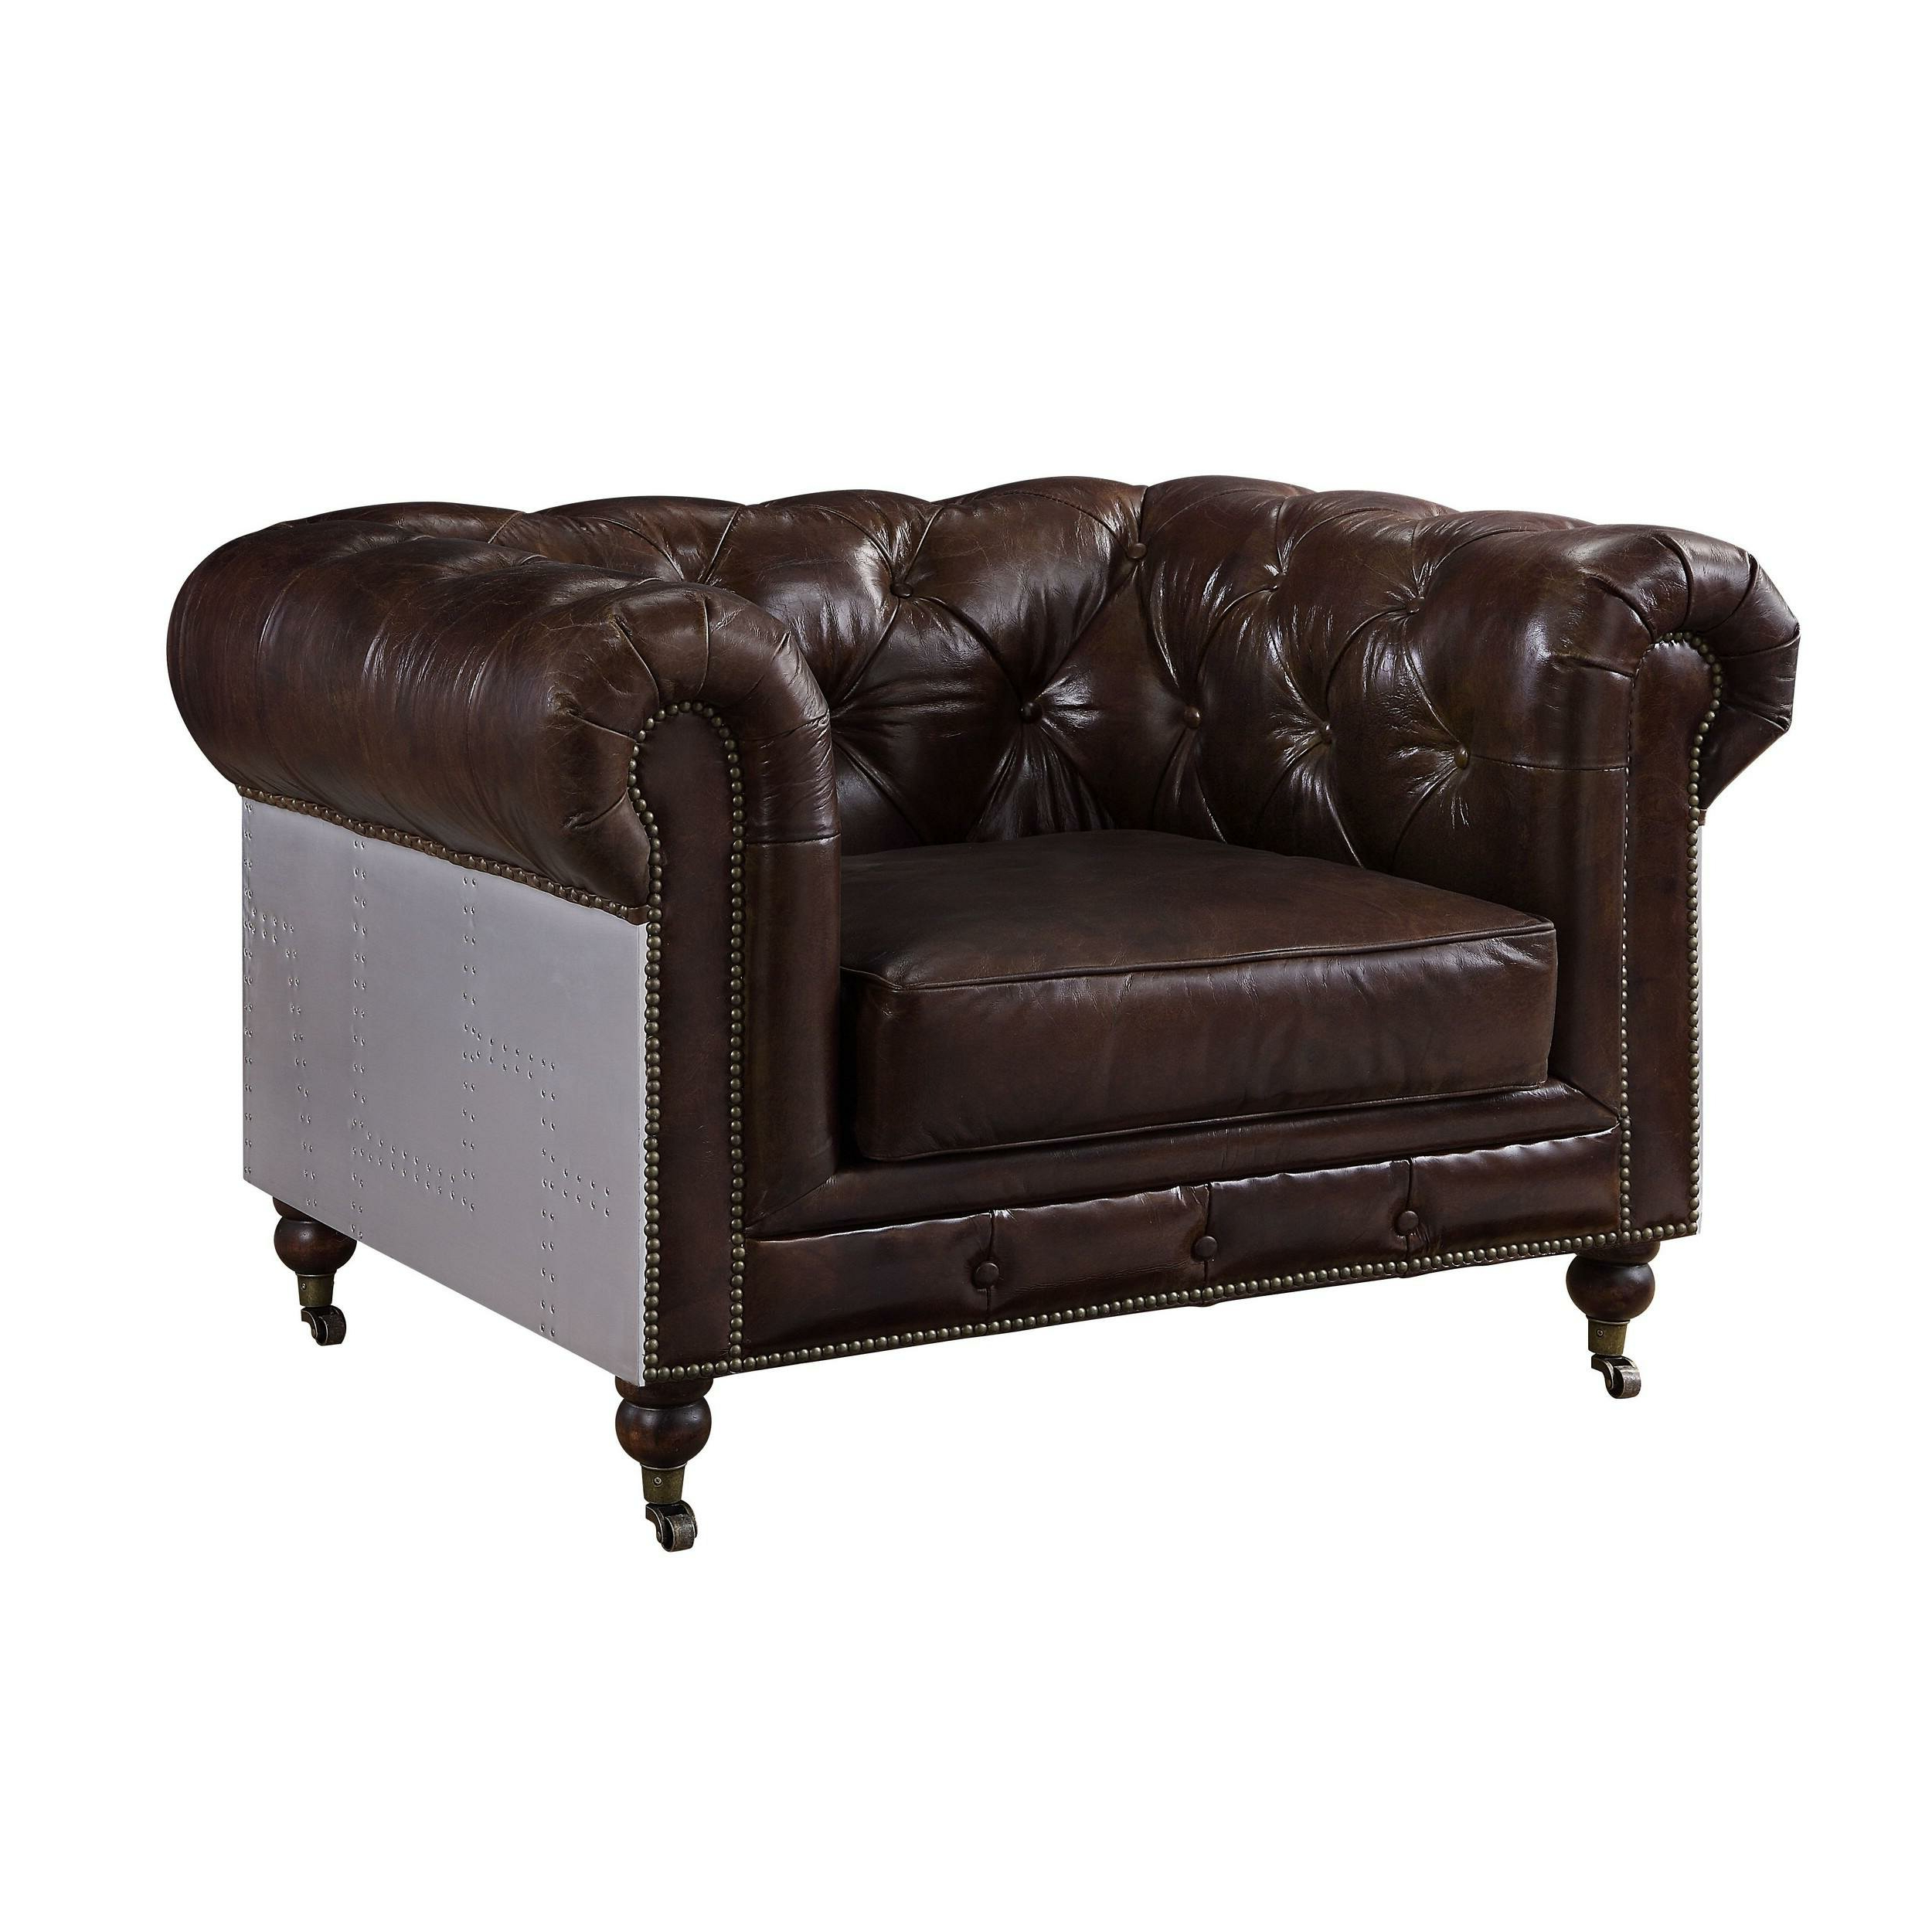 "Most Recently Released Litteral 39"" W Tufted Faux Leather Club Chair Pertaining To Lucea Faux Leather Barrel Chairs And Ottoman (View 9 of 20)"